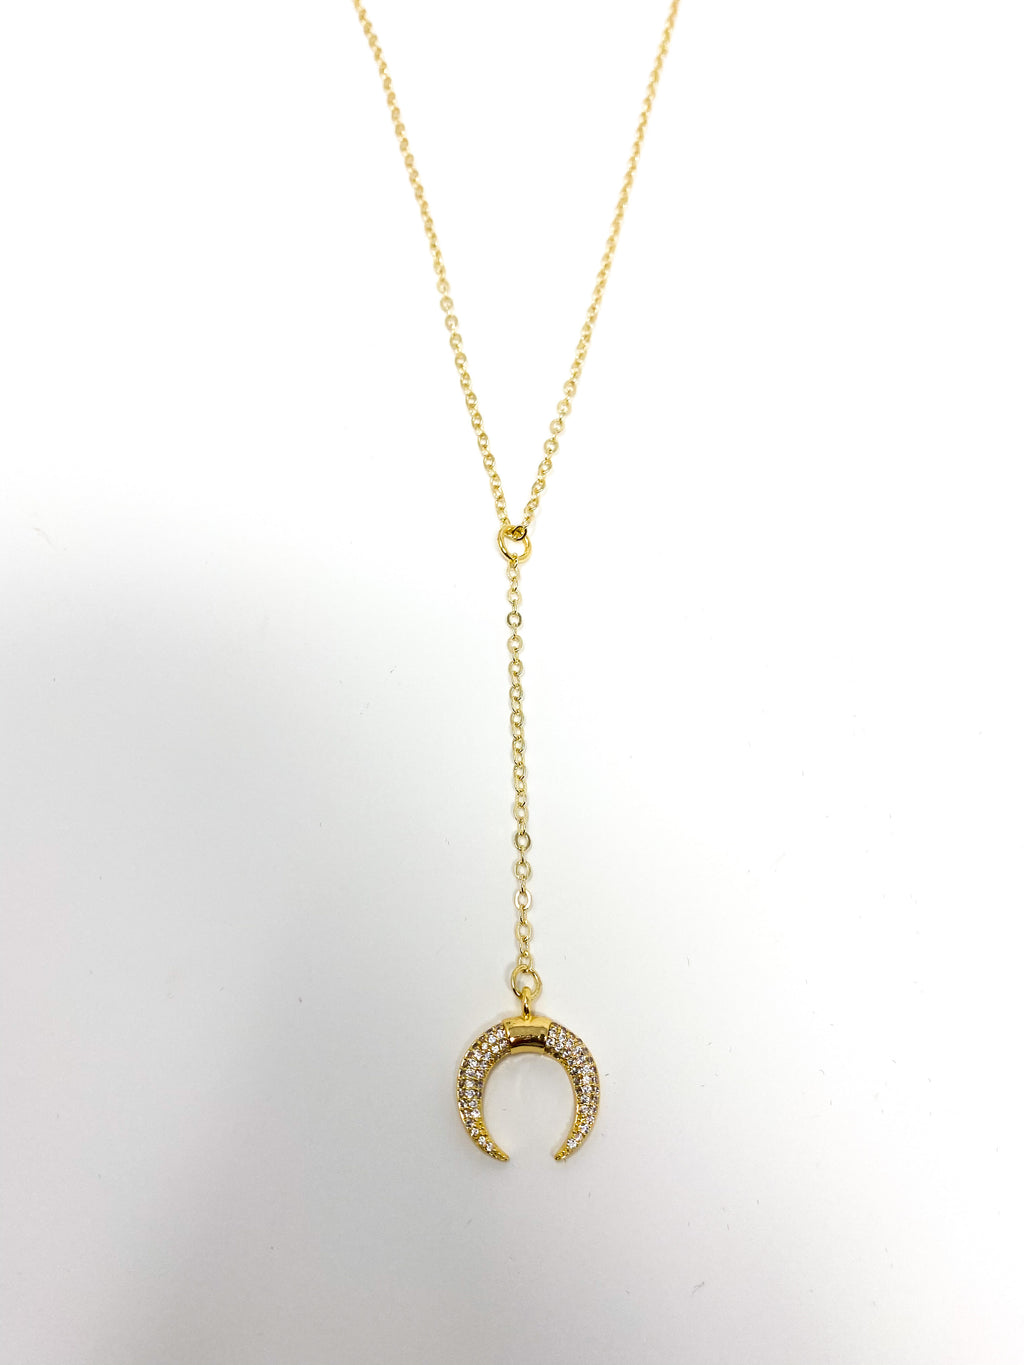 MAAN- Crescent Moon Necklace